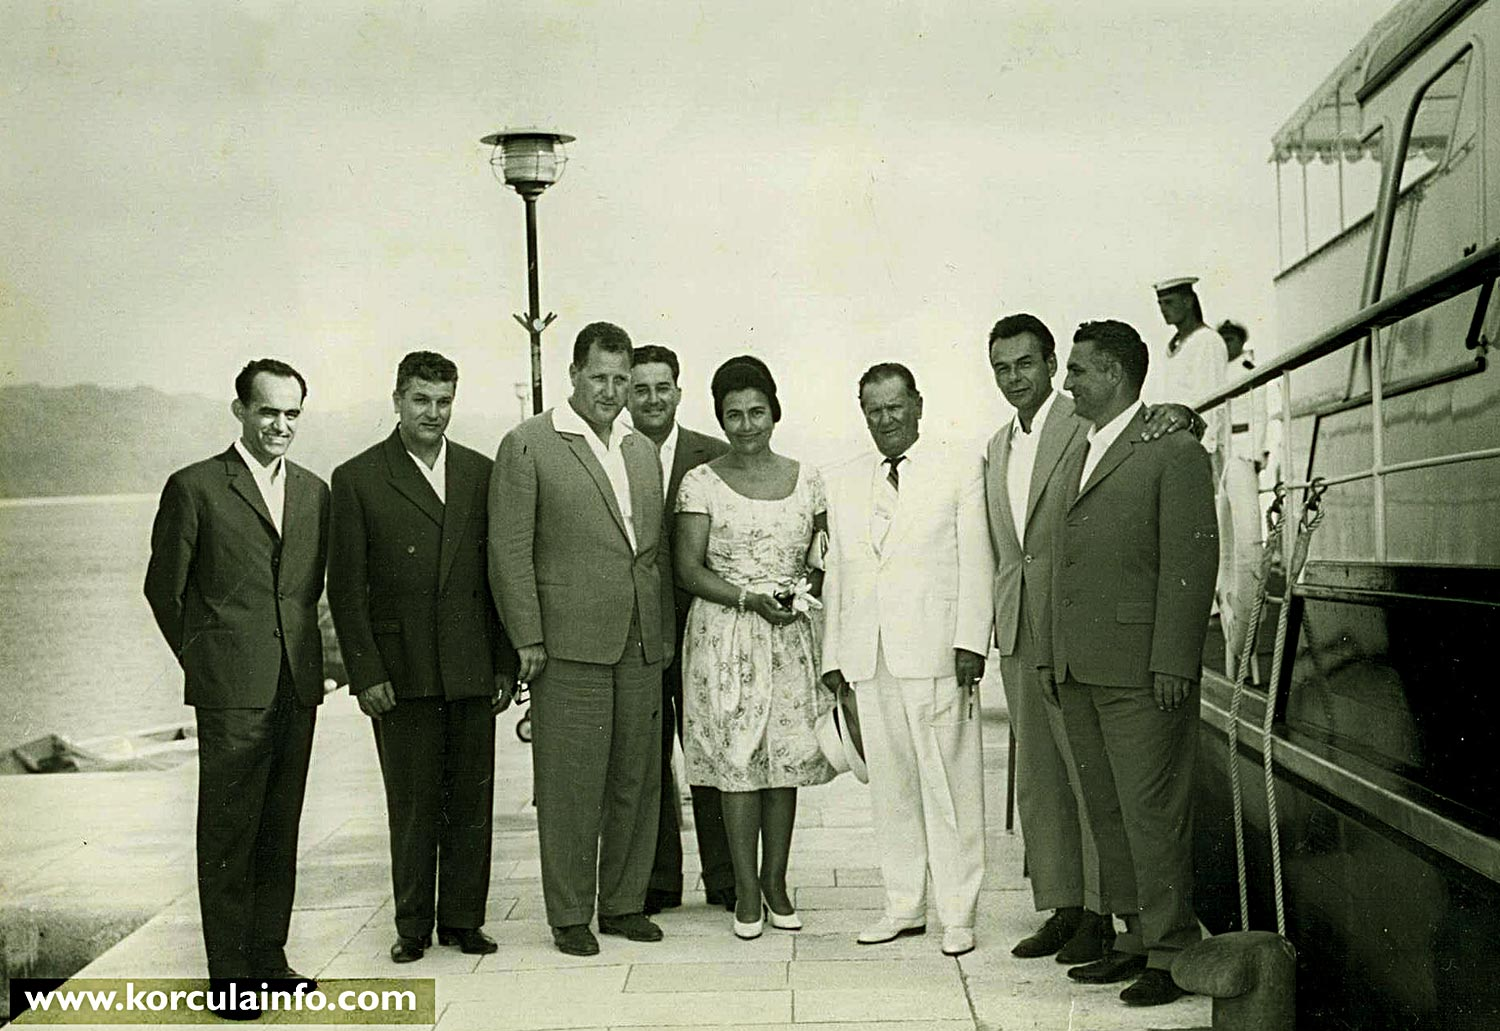 Shipbuilders from Korcula with Tito @ Brijuni in 1963